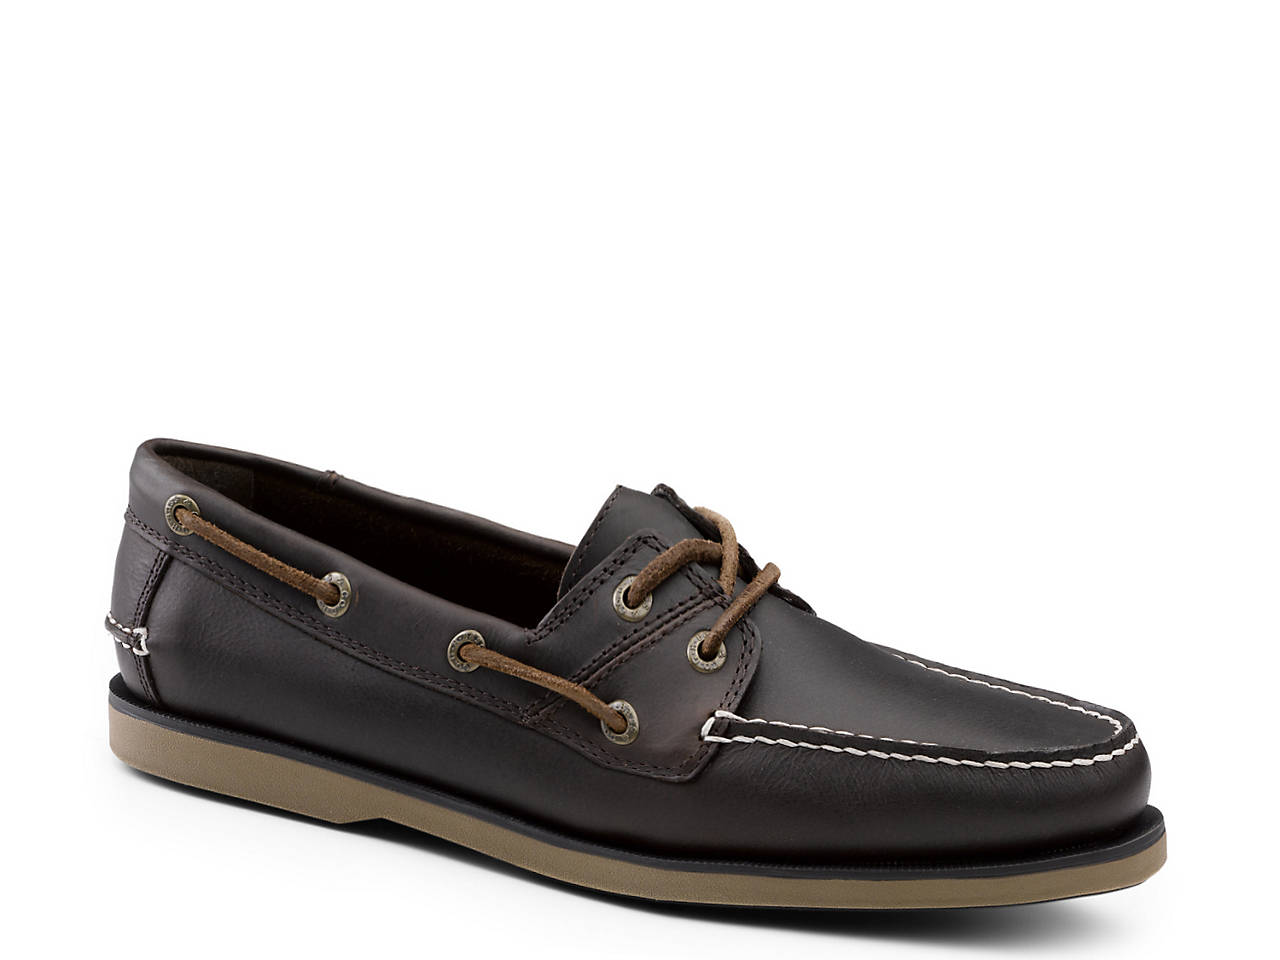 Bass Boat Shoes Review